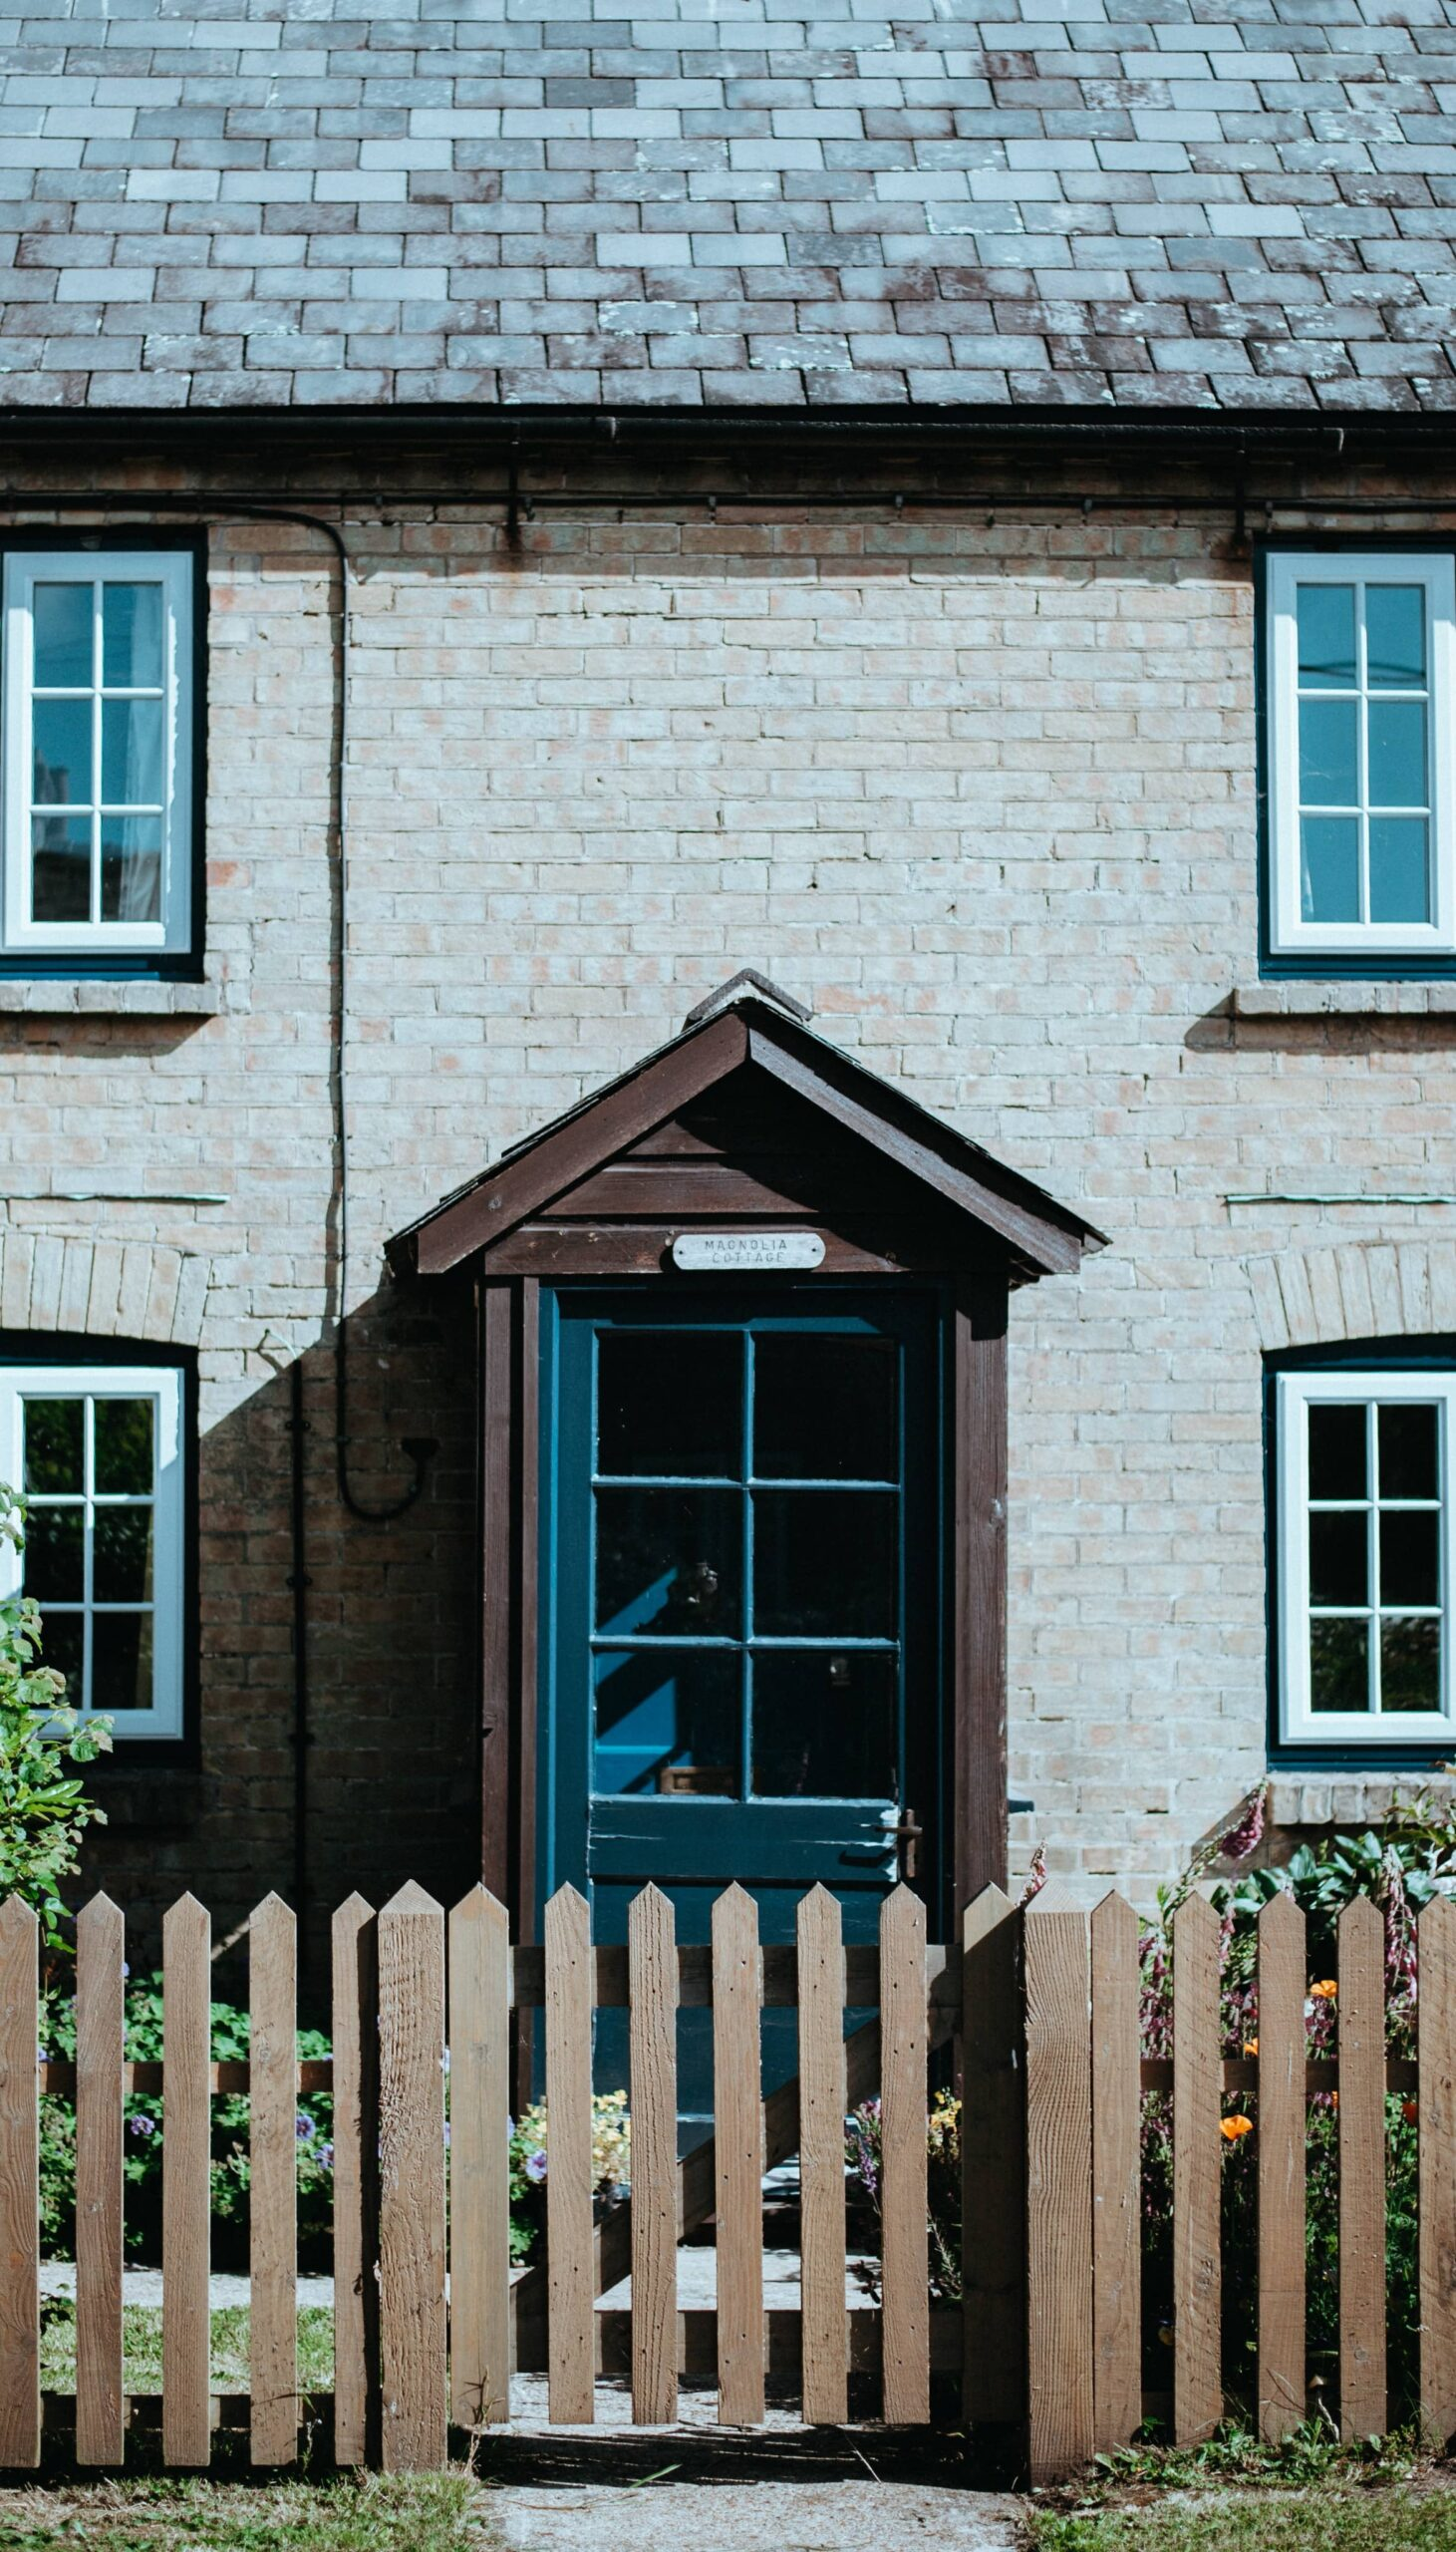 extension ideas for small houses